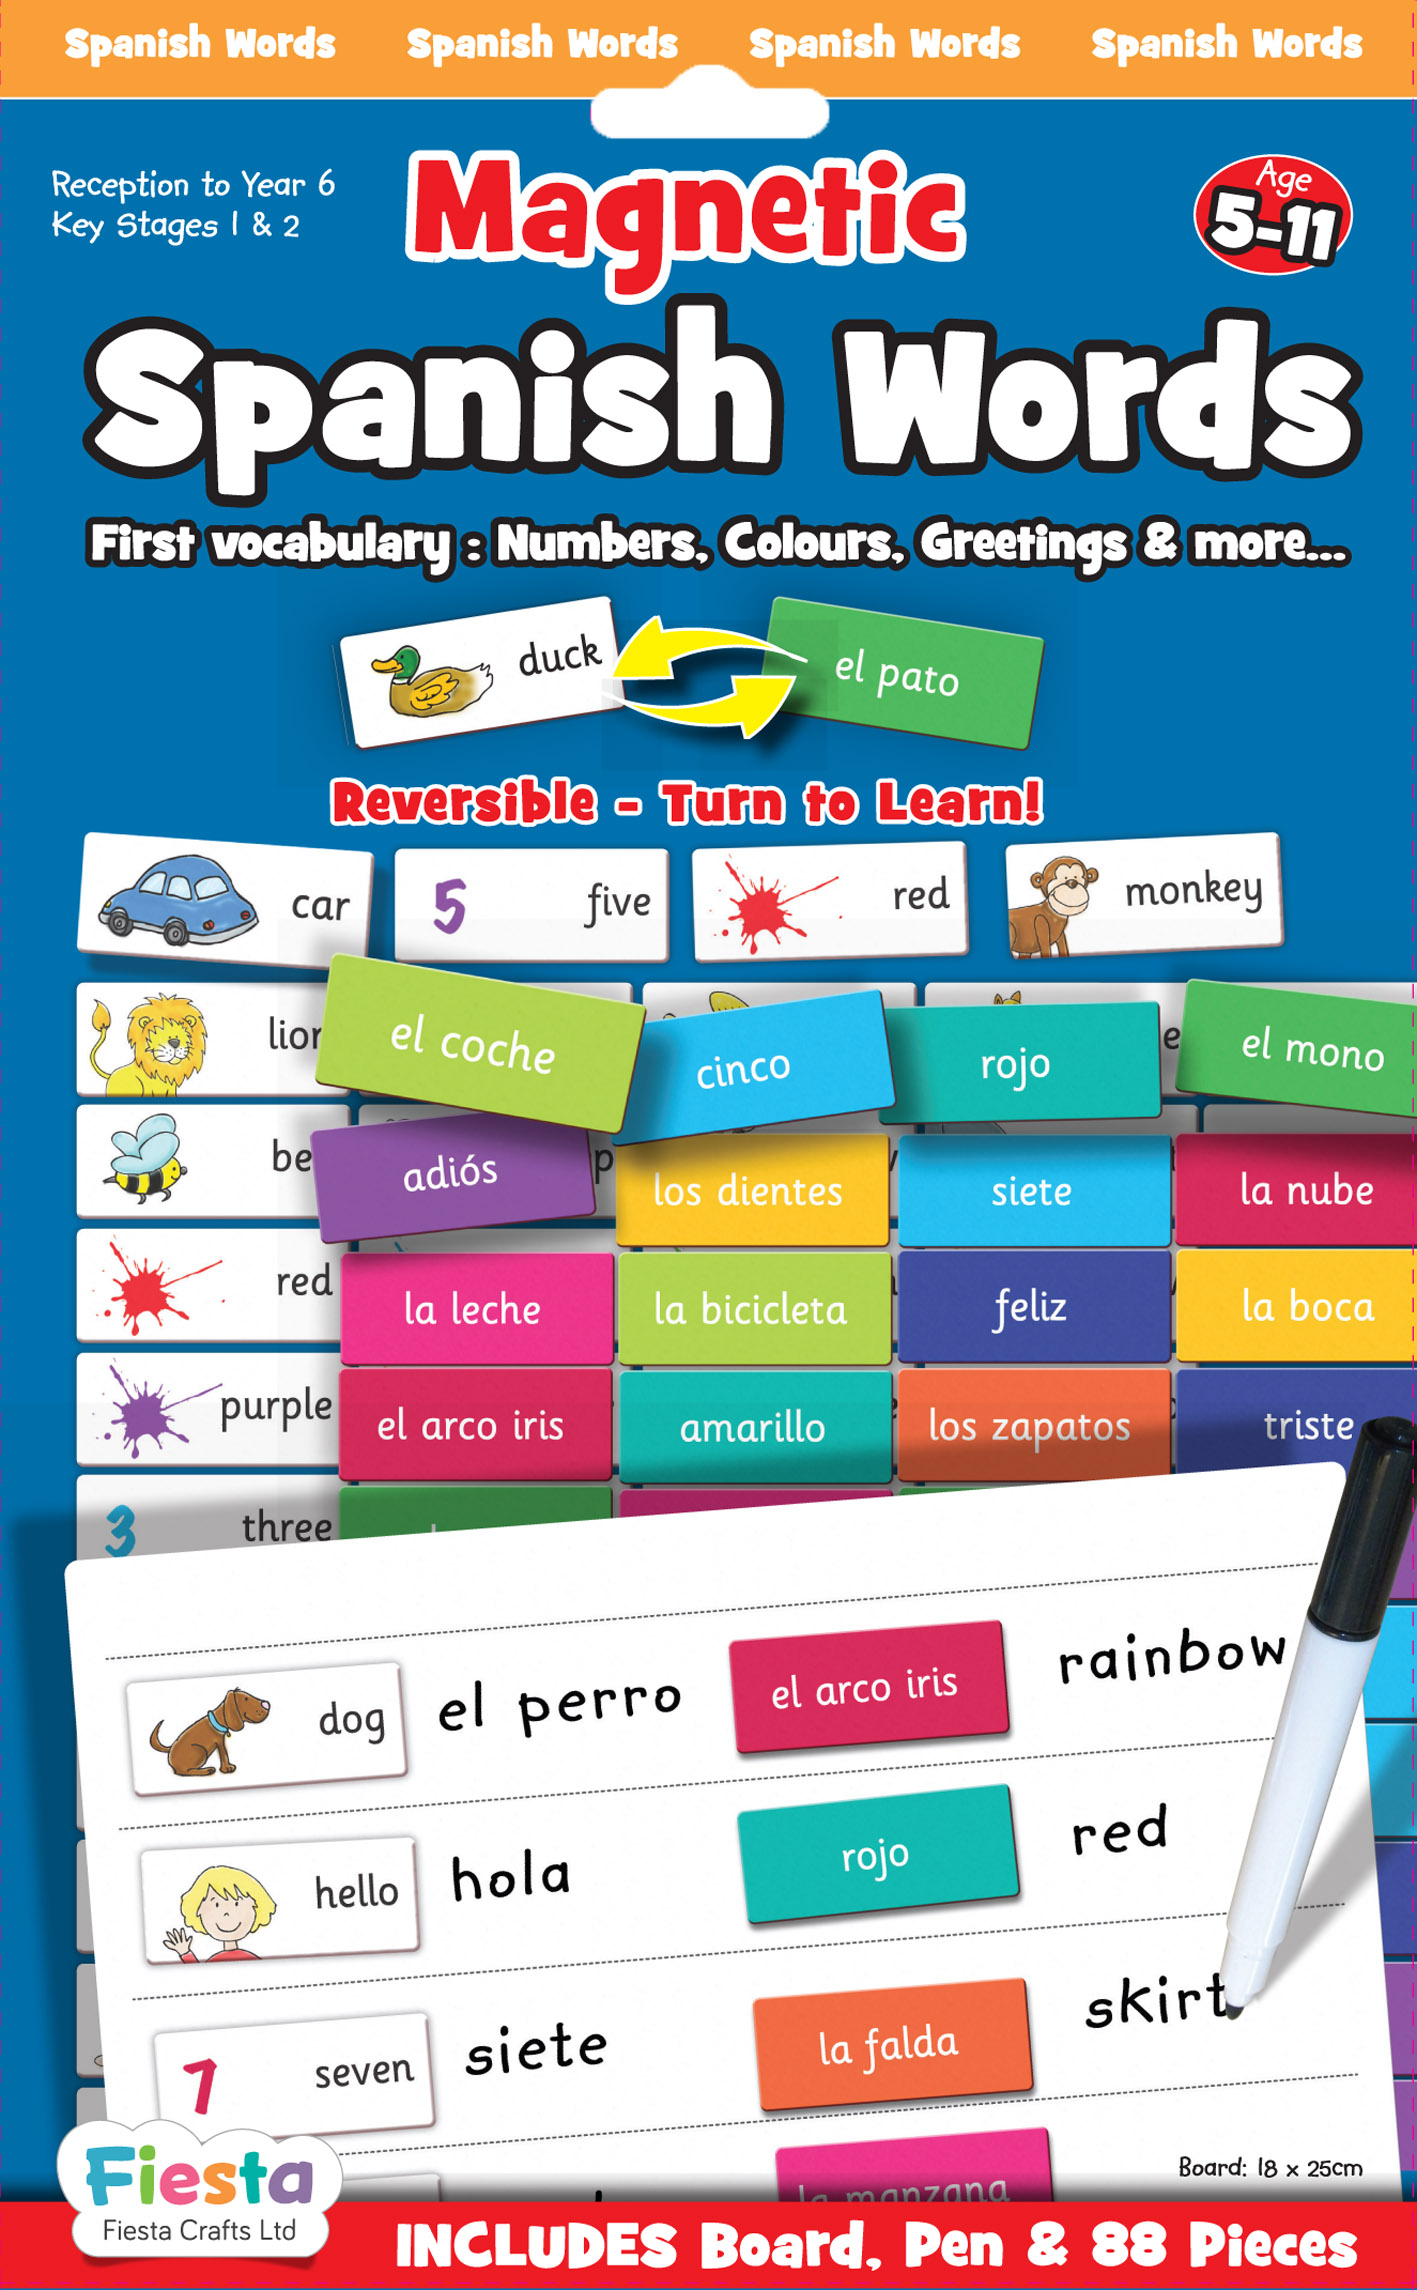 Childrens Learn Spanish Magnetic Words Game Board By